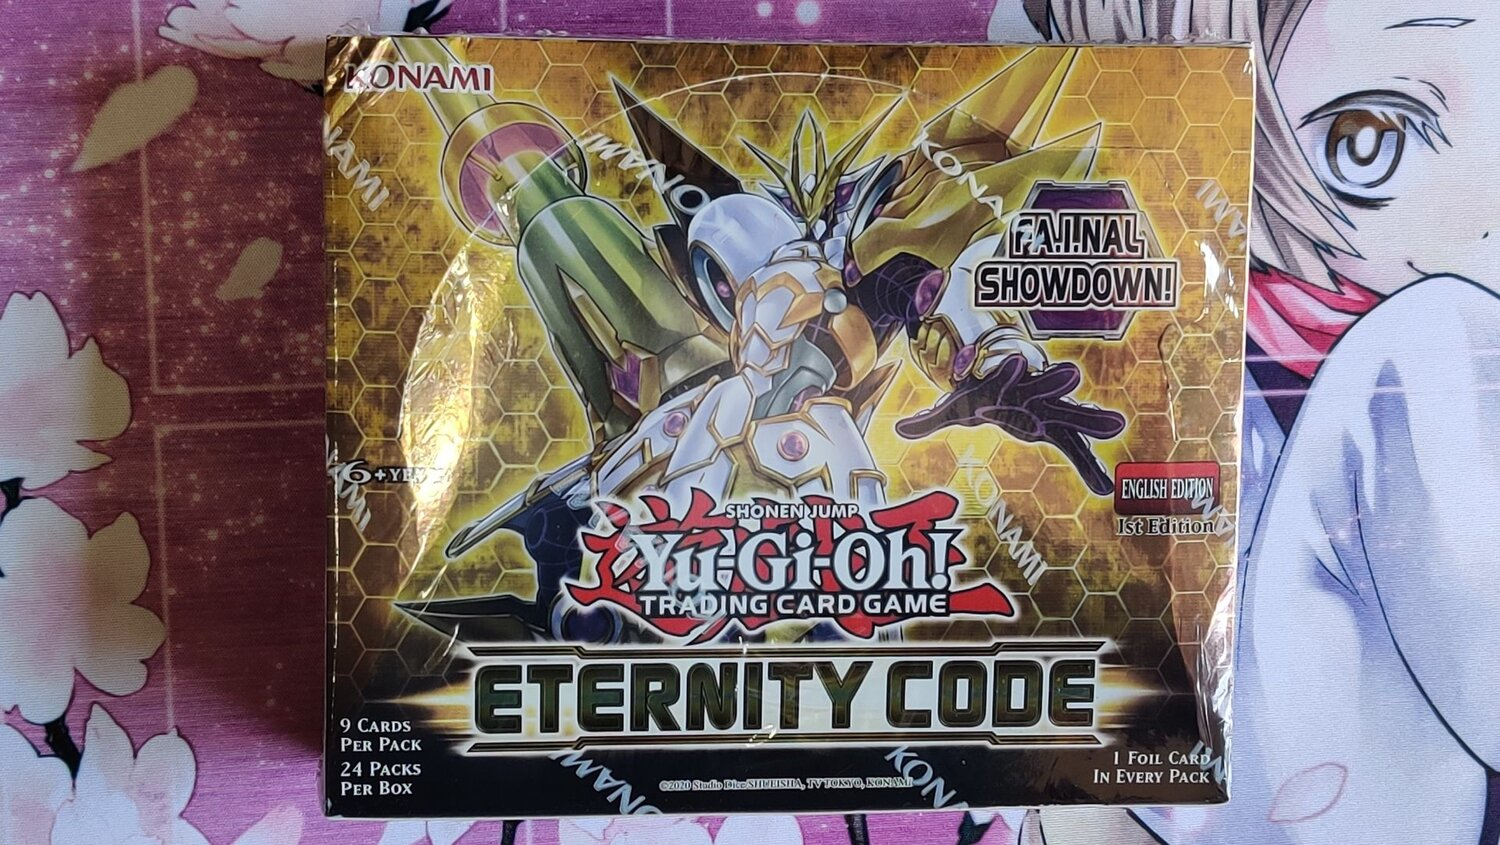 ETERNITY CODE is Almost Here in the United States!